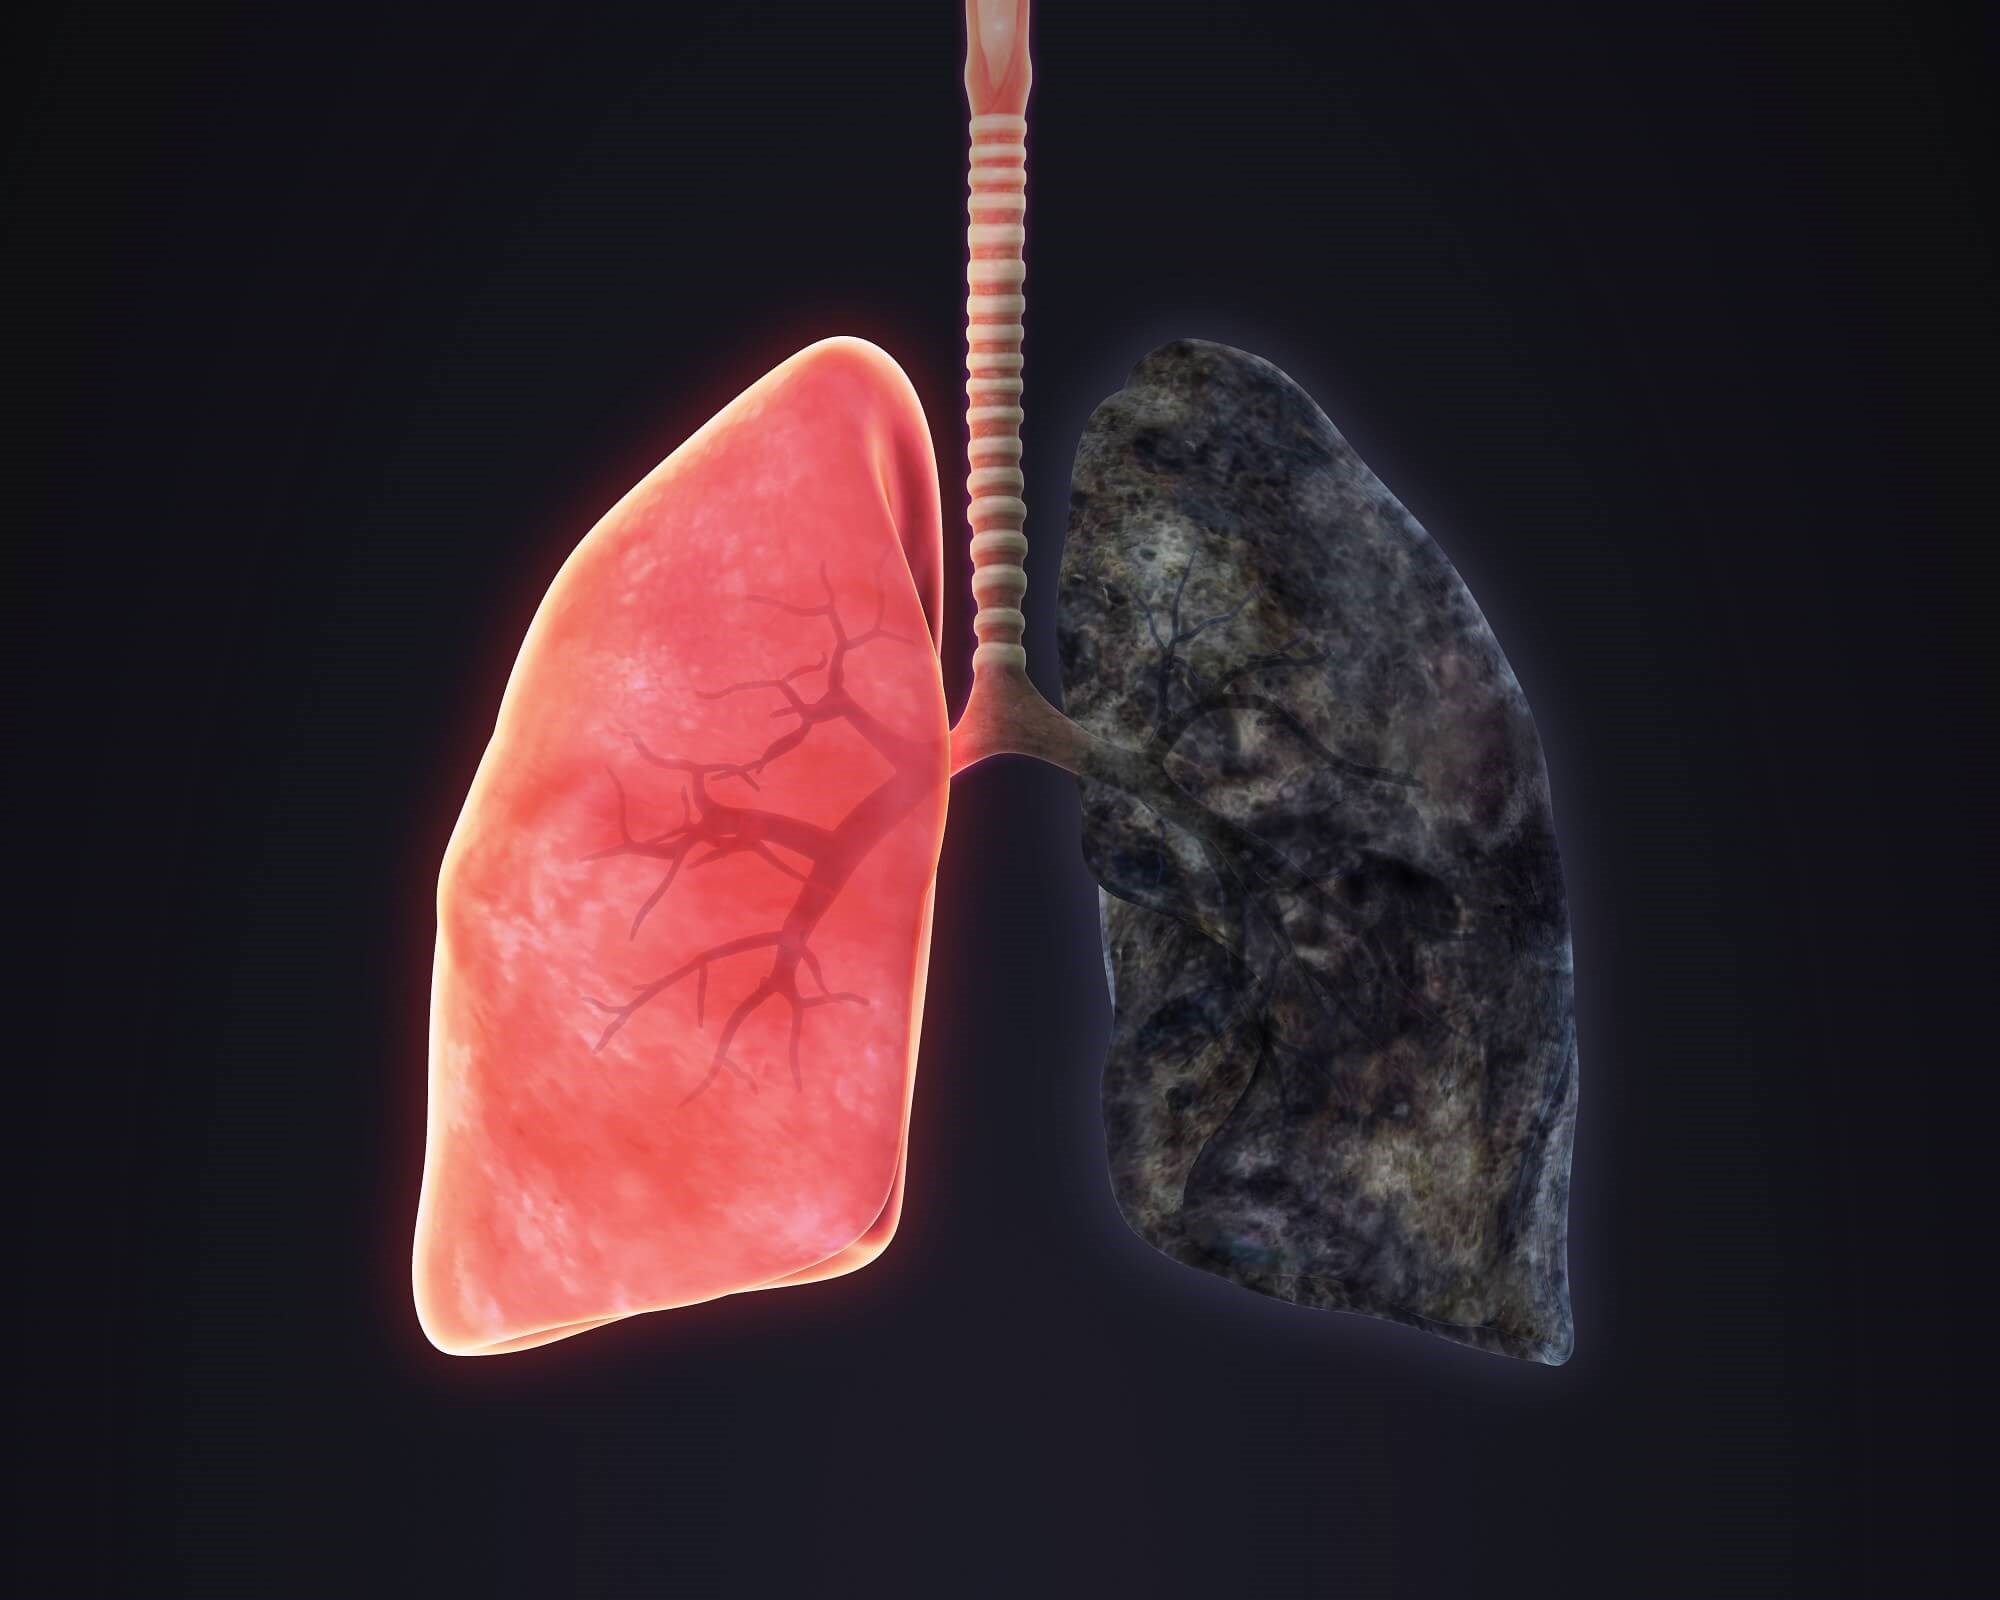 Inflammatory Markers in COPD Linked to Increased Symptom Burden in Smokers